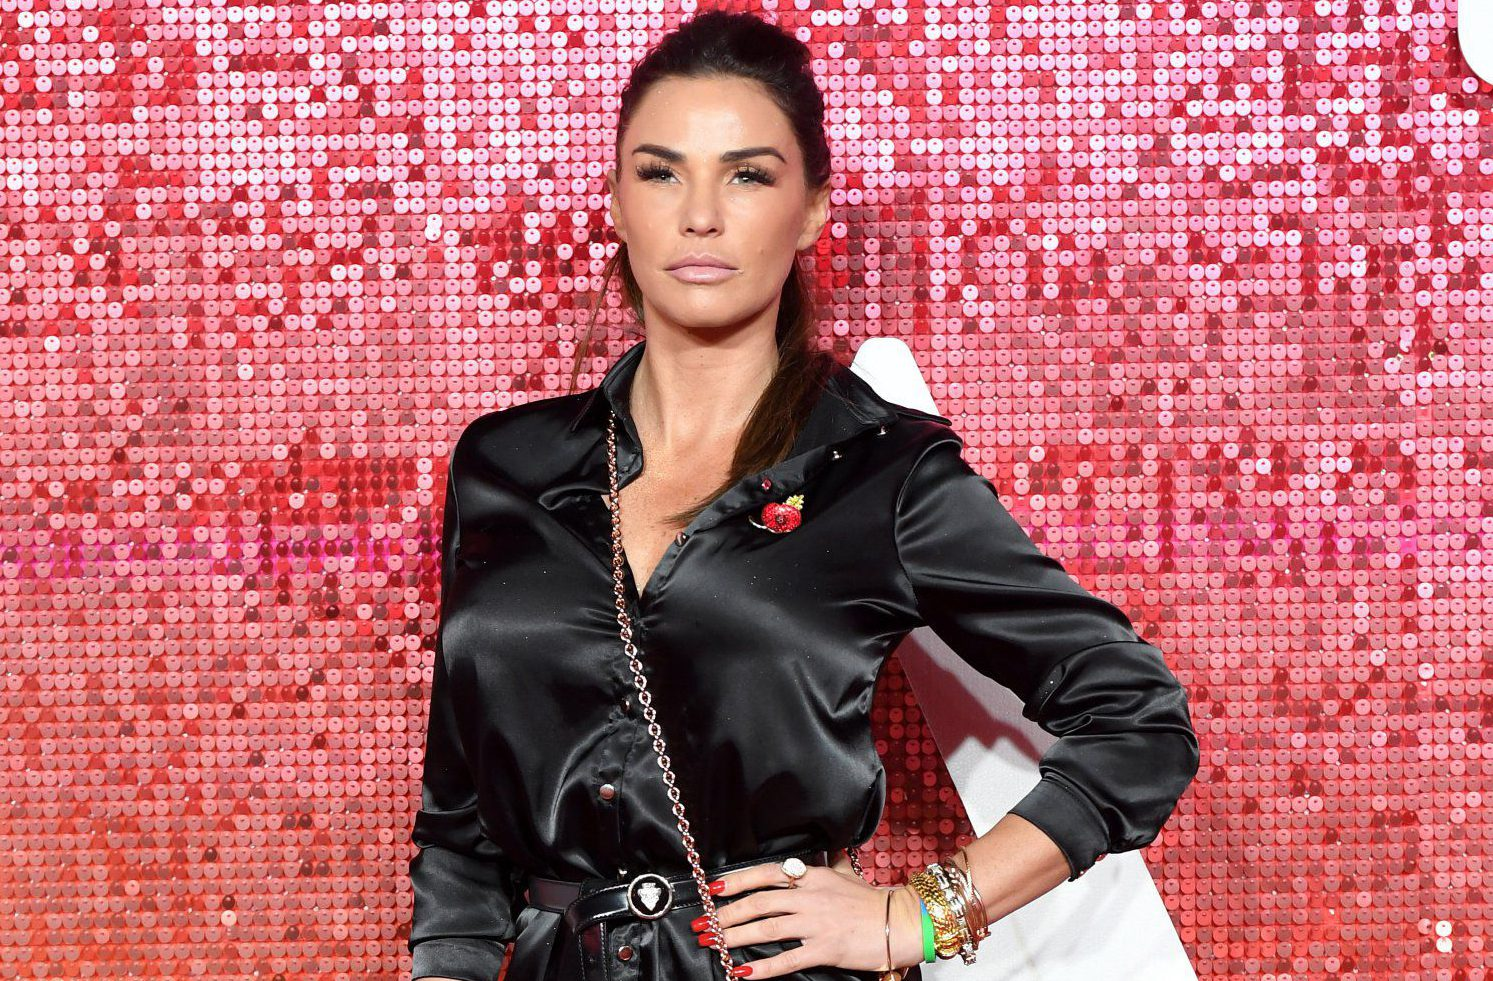 Katie Price wants Dancing on Ice appearance to help fix 'cash flow problems'